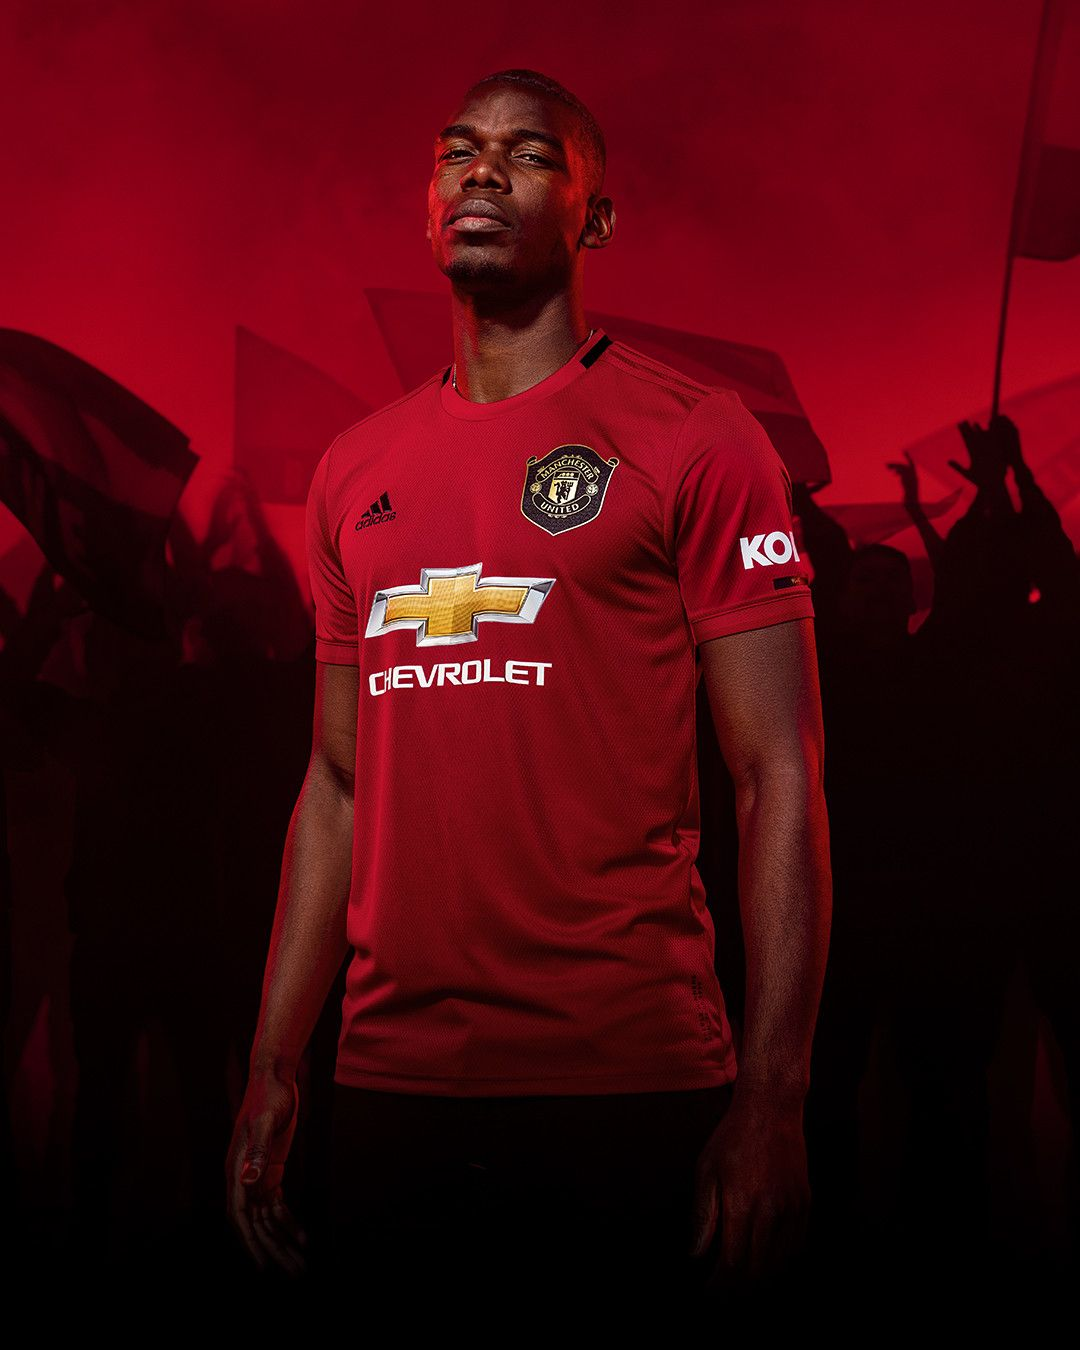 Why The Championship Play Off Final Is Soccer S Richest Game Manchester United Manchester United Football Club World Soccer Shop